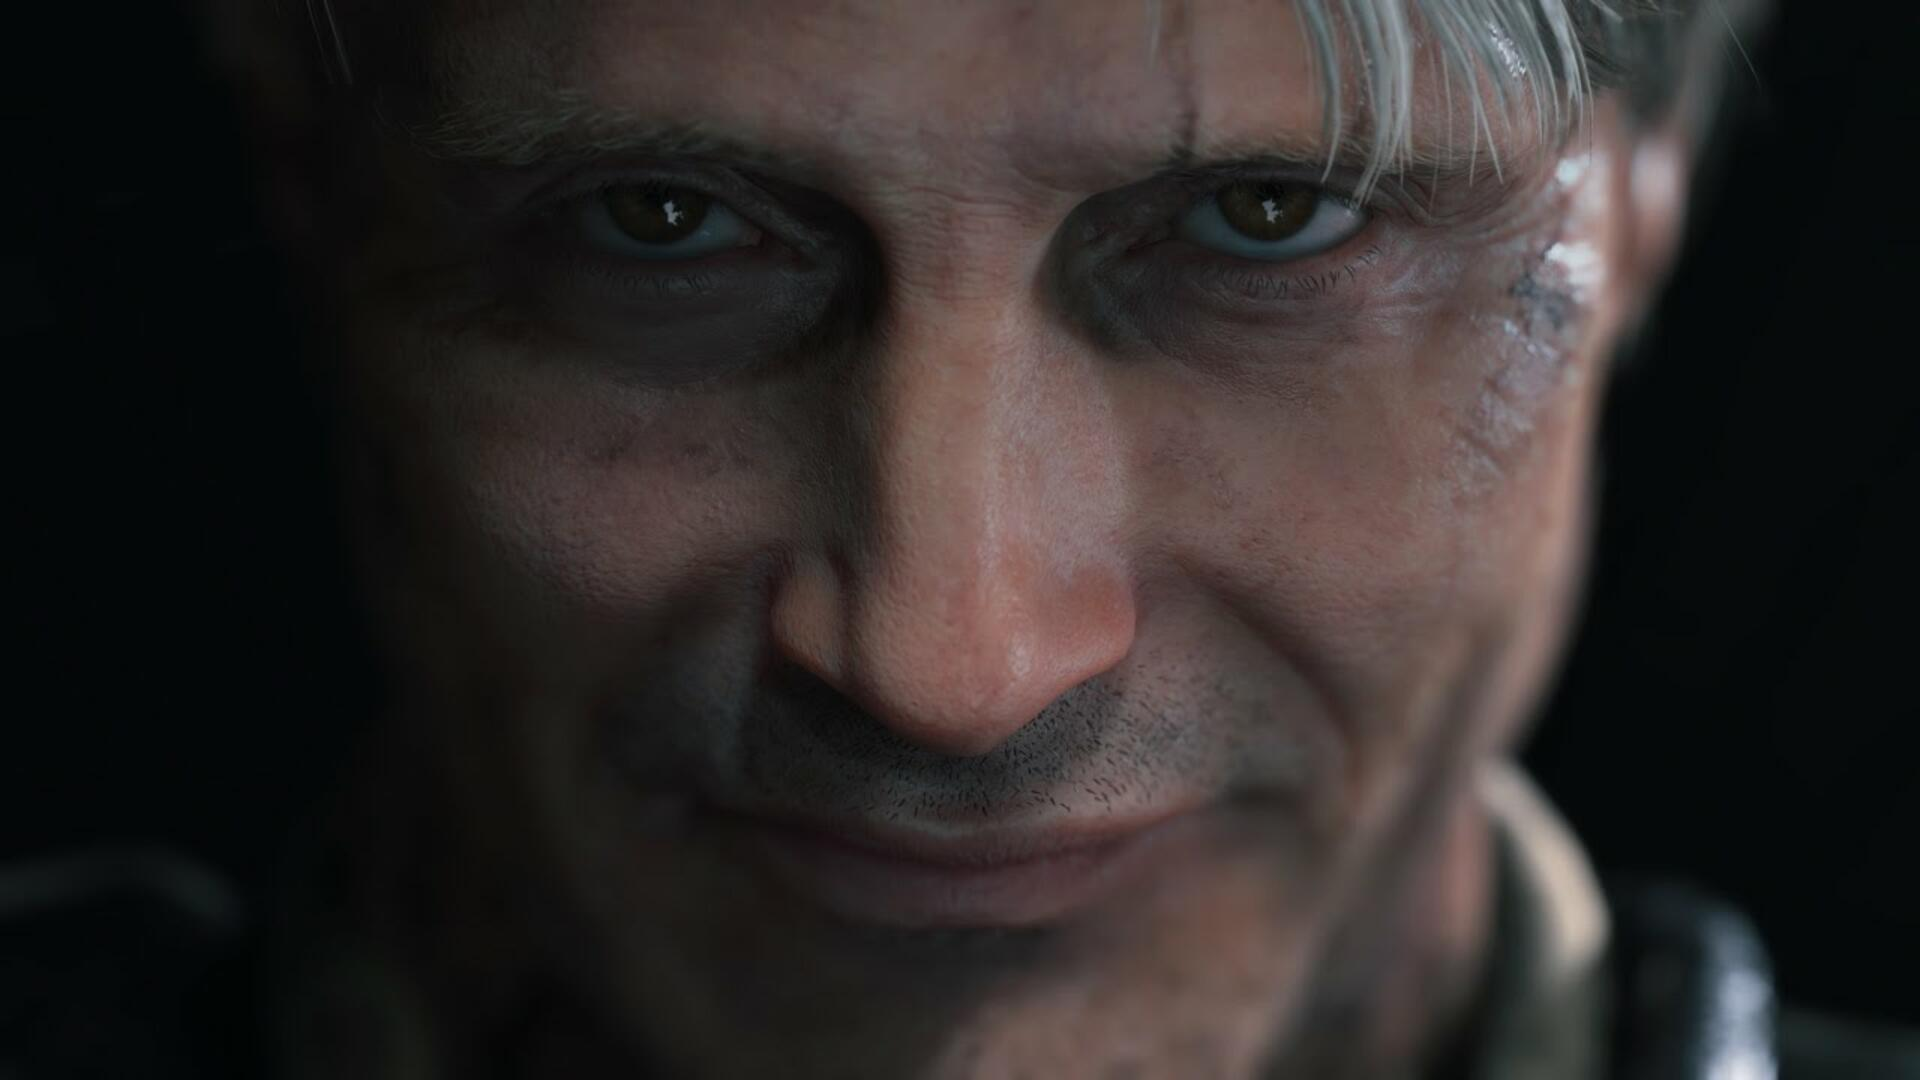 Death Stranding Leaks Suggest a 2019 Release Date and Reveal Pre-Order Bonuses